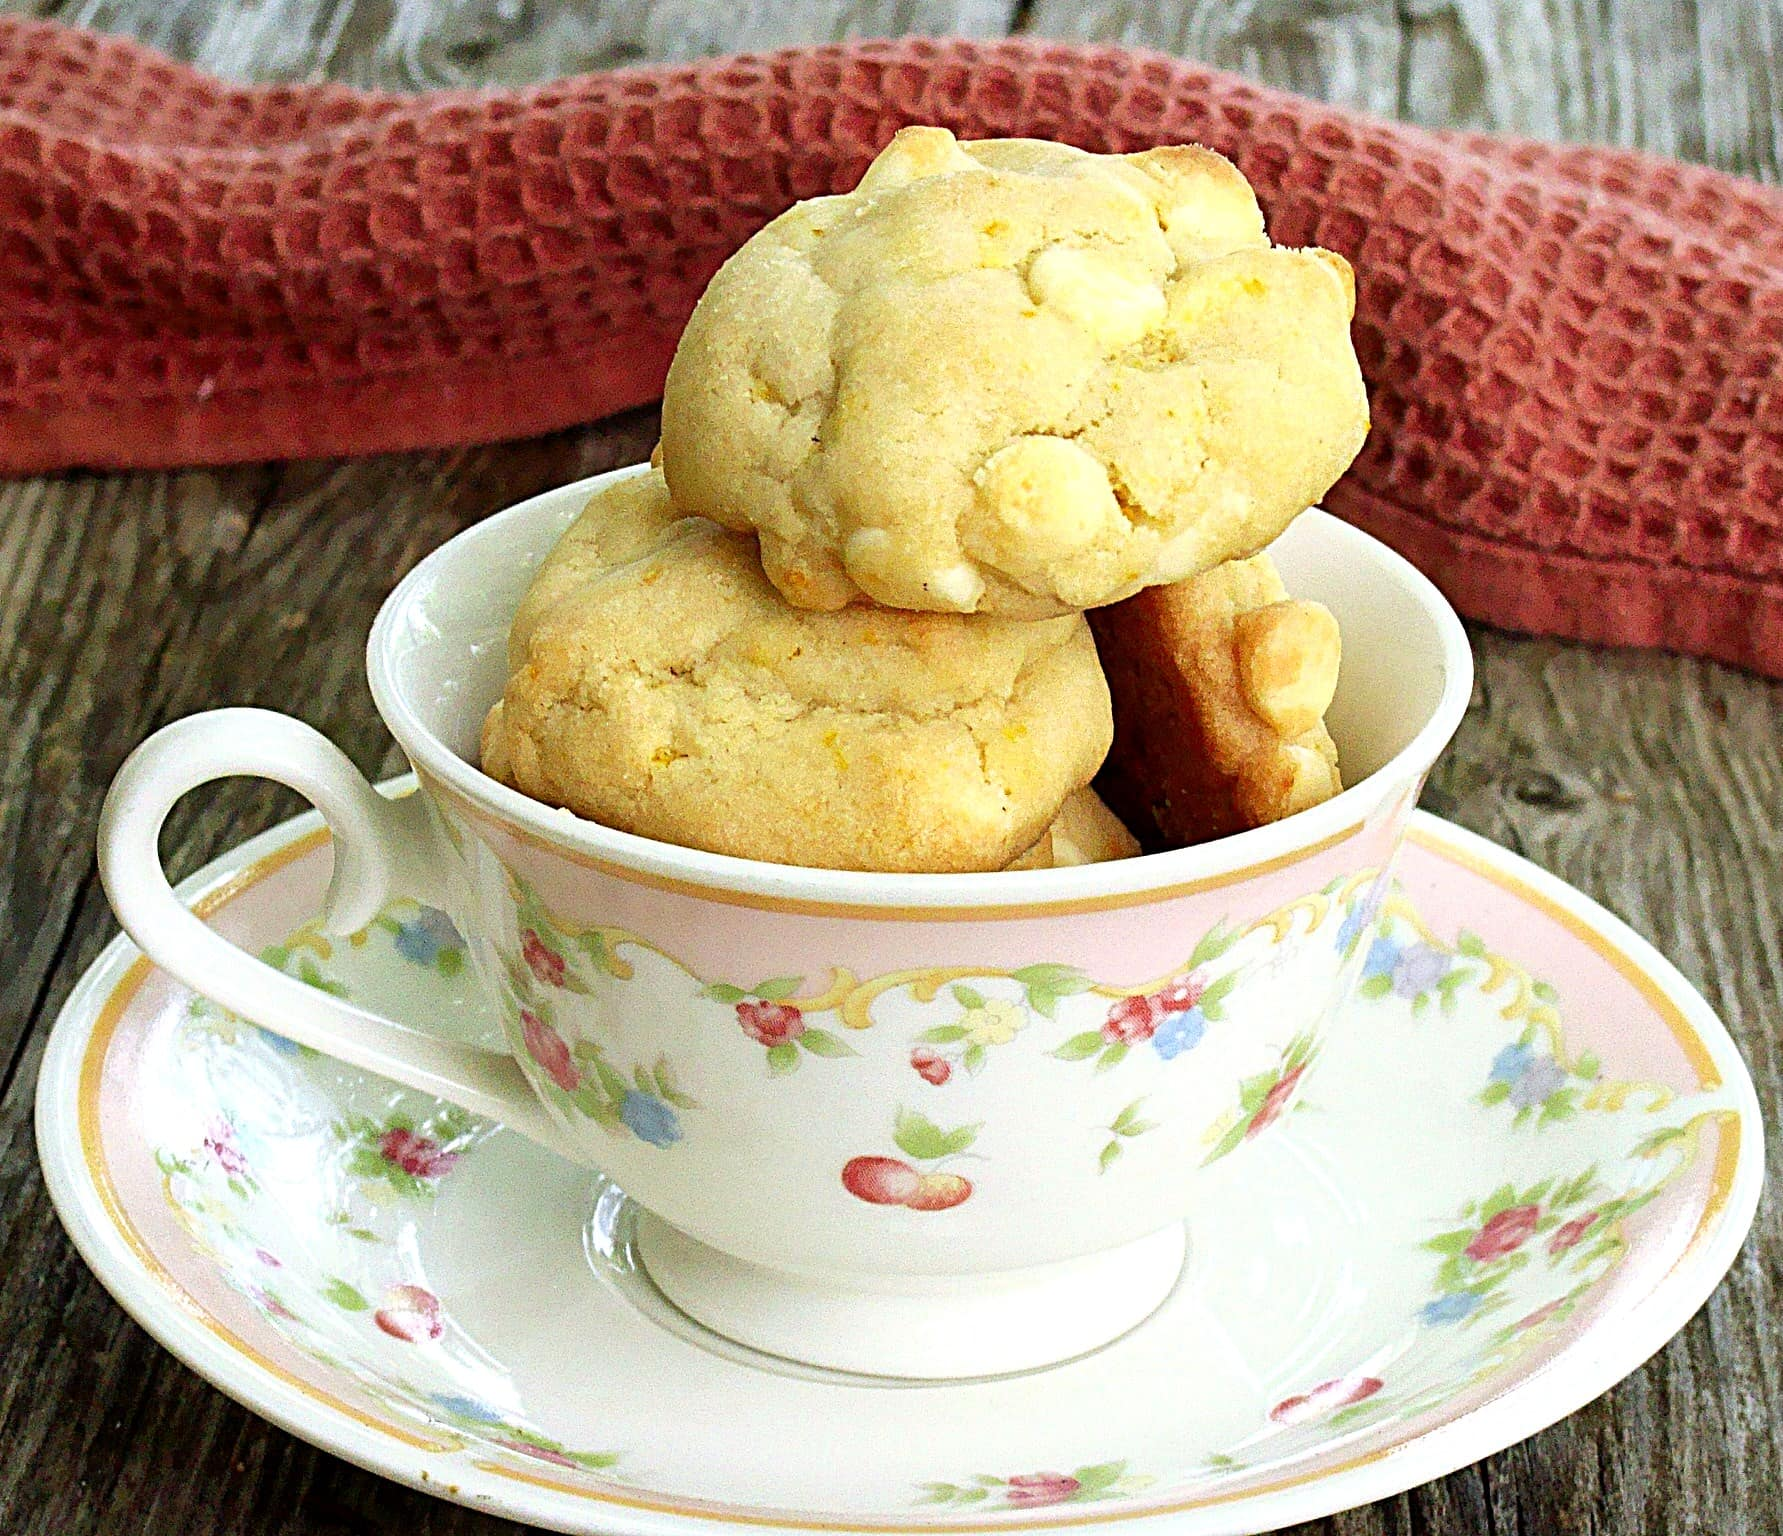 ... contain two of her favorite ingredients; white chocolate and oranges